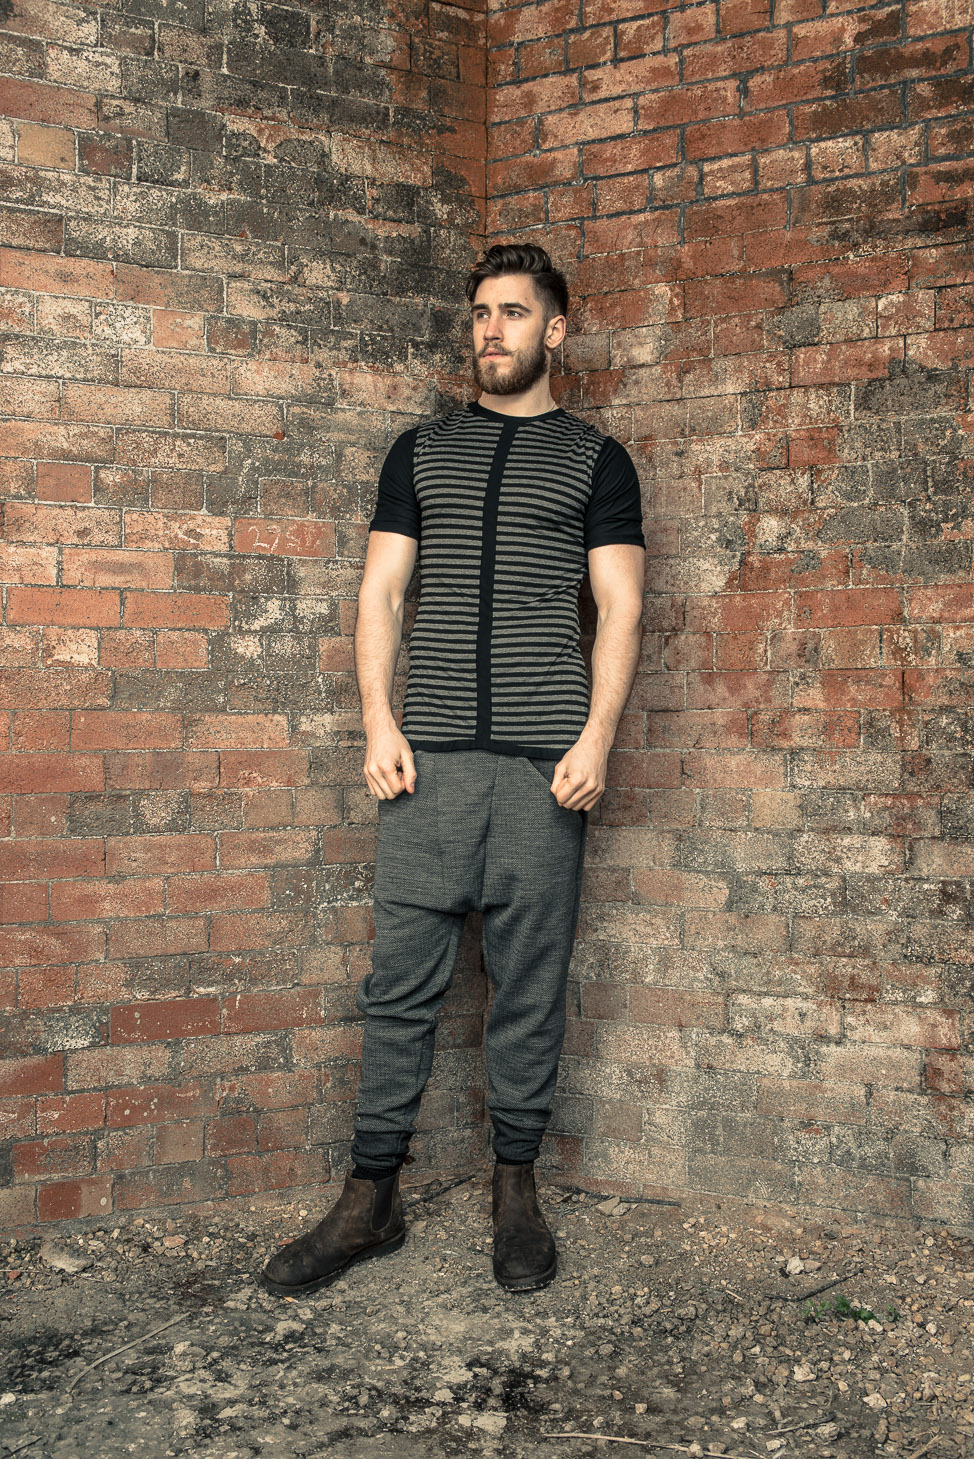 zaramia-ava-zaramiaava-leeds-fashion-designer-ethical-sustainable-tailored-minimalist-fitted-versatile-drape-koji-grey-tshirt-top-hareem-trousers-black-grey-texture-styling-menswear-model-25